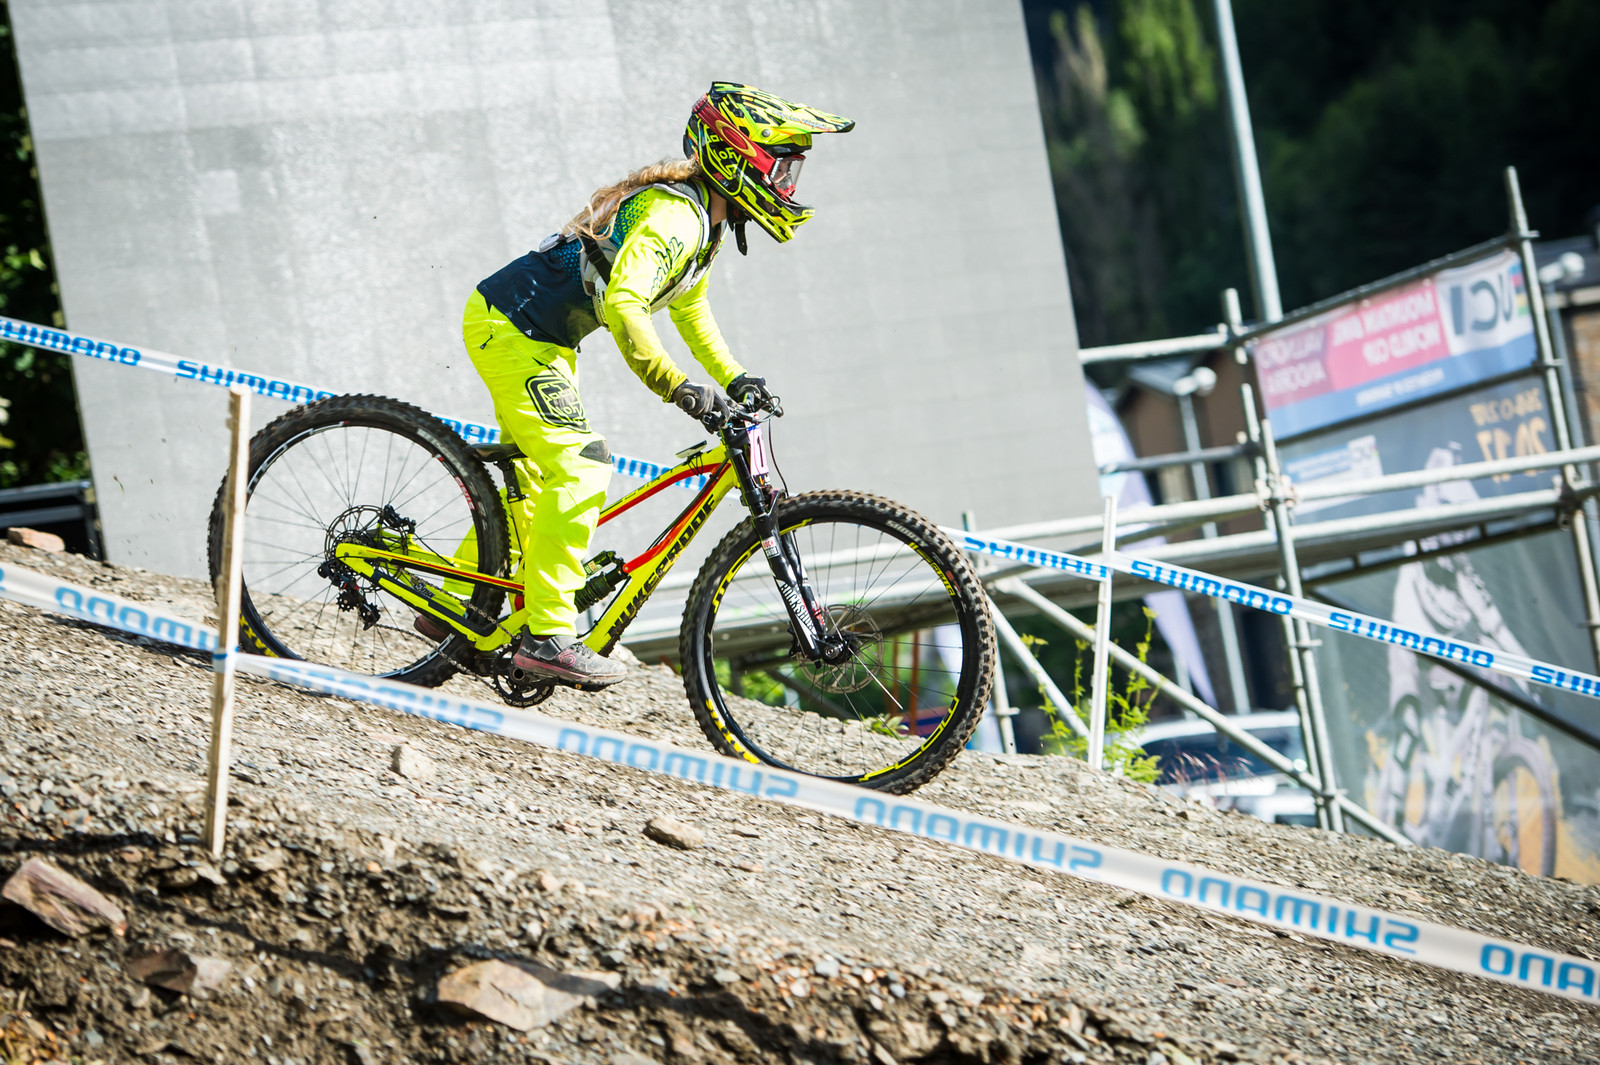 Nukeproof G-Out 2 - G-Out Project: Andorra World Cup 2017 - Mountain Biking Pictures - Vital MTB